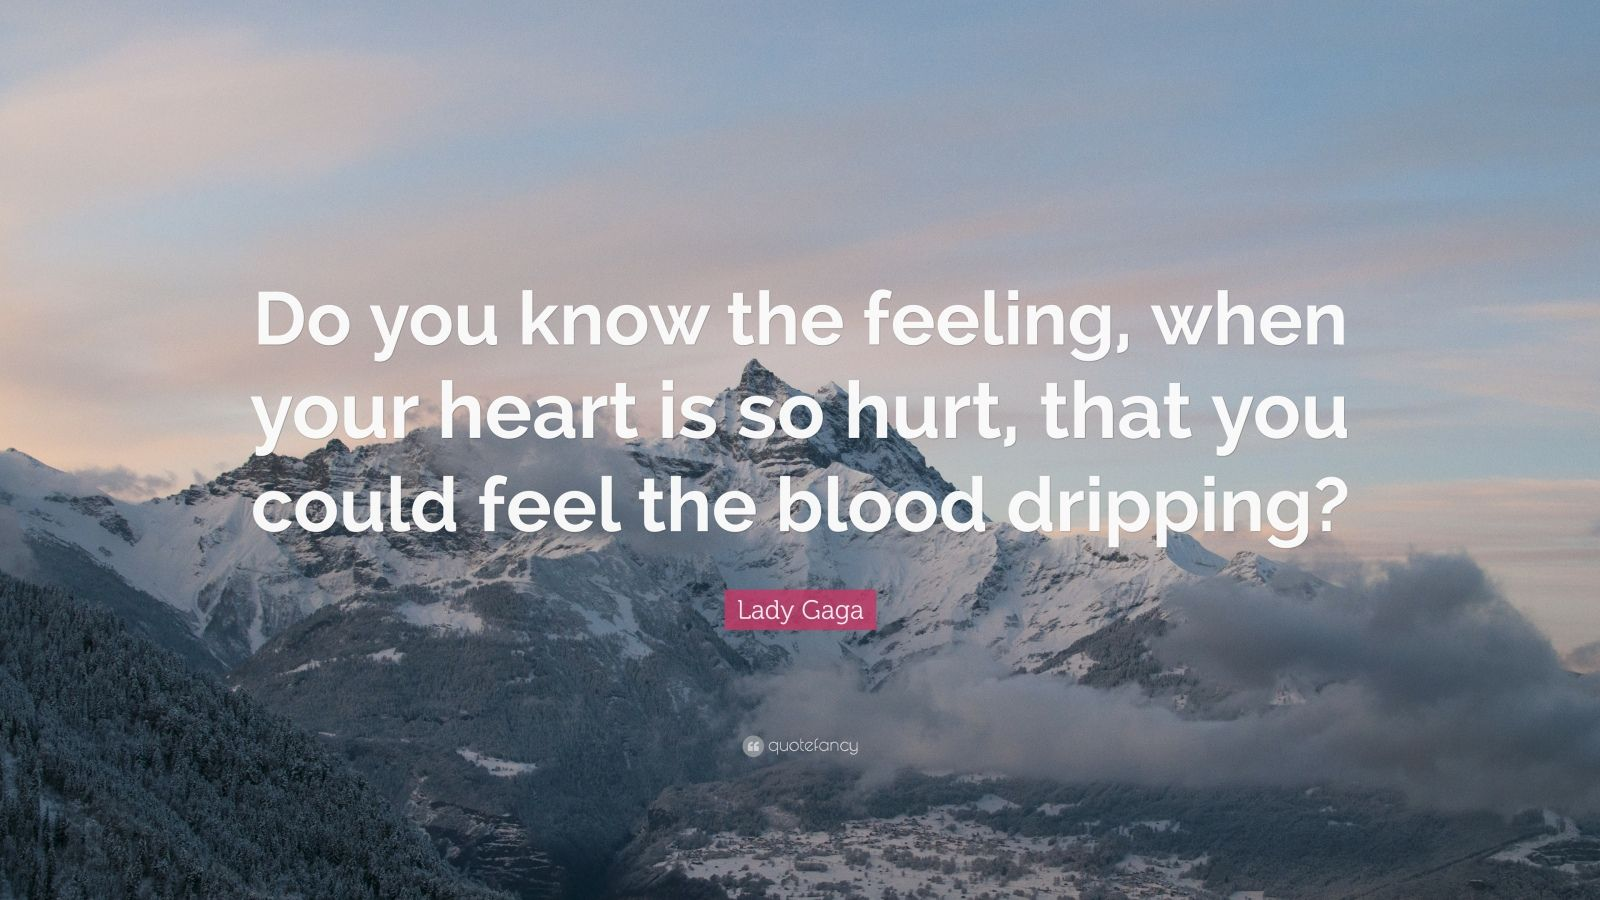 """Lady Gaga Quote: """"Do you know the feeling, when your heart is so hurt, that you could feel the blood dripping?"""""""